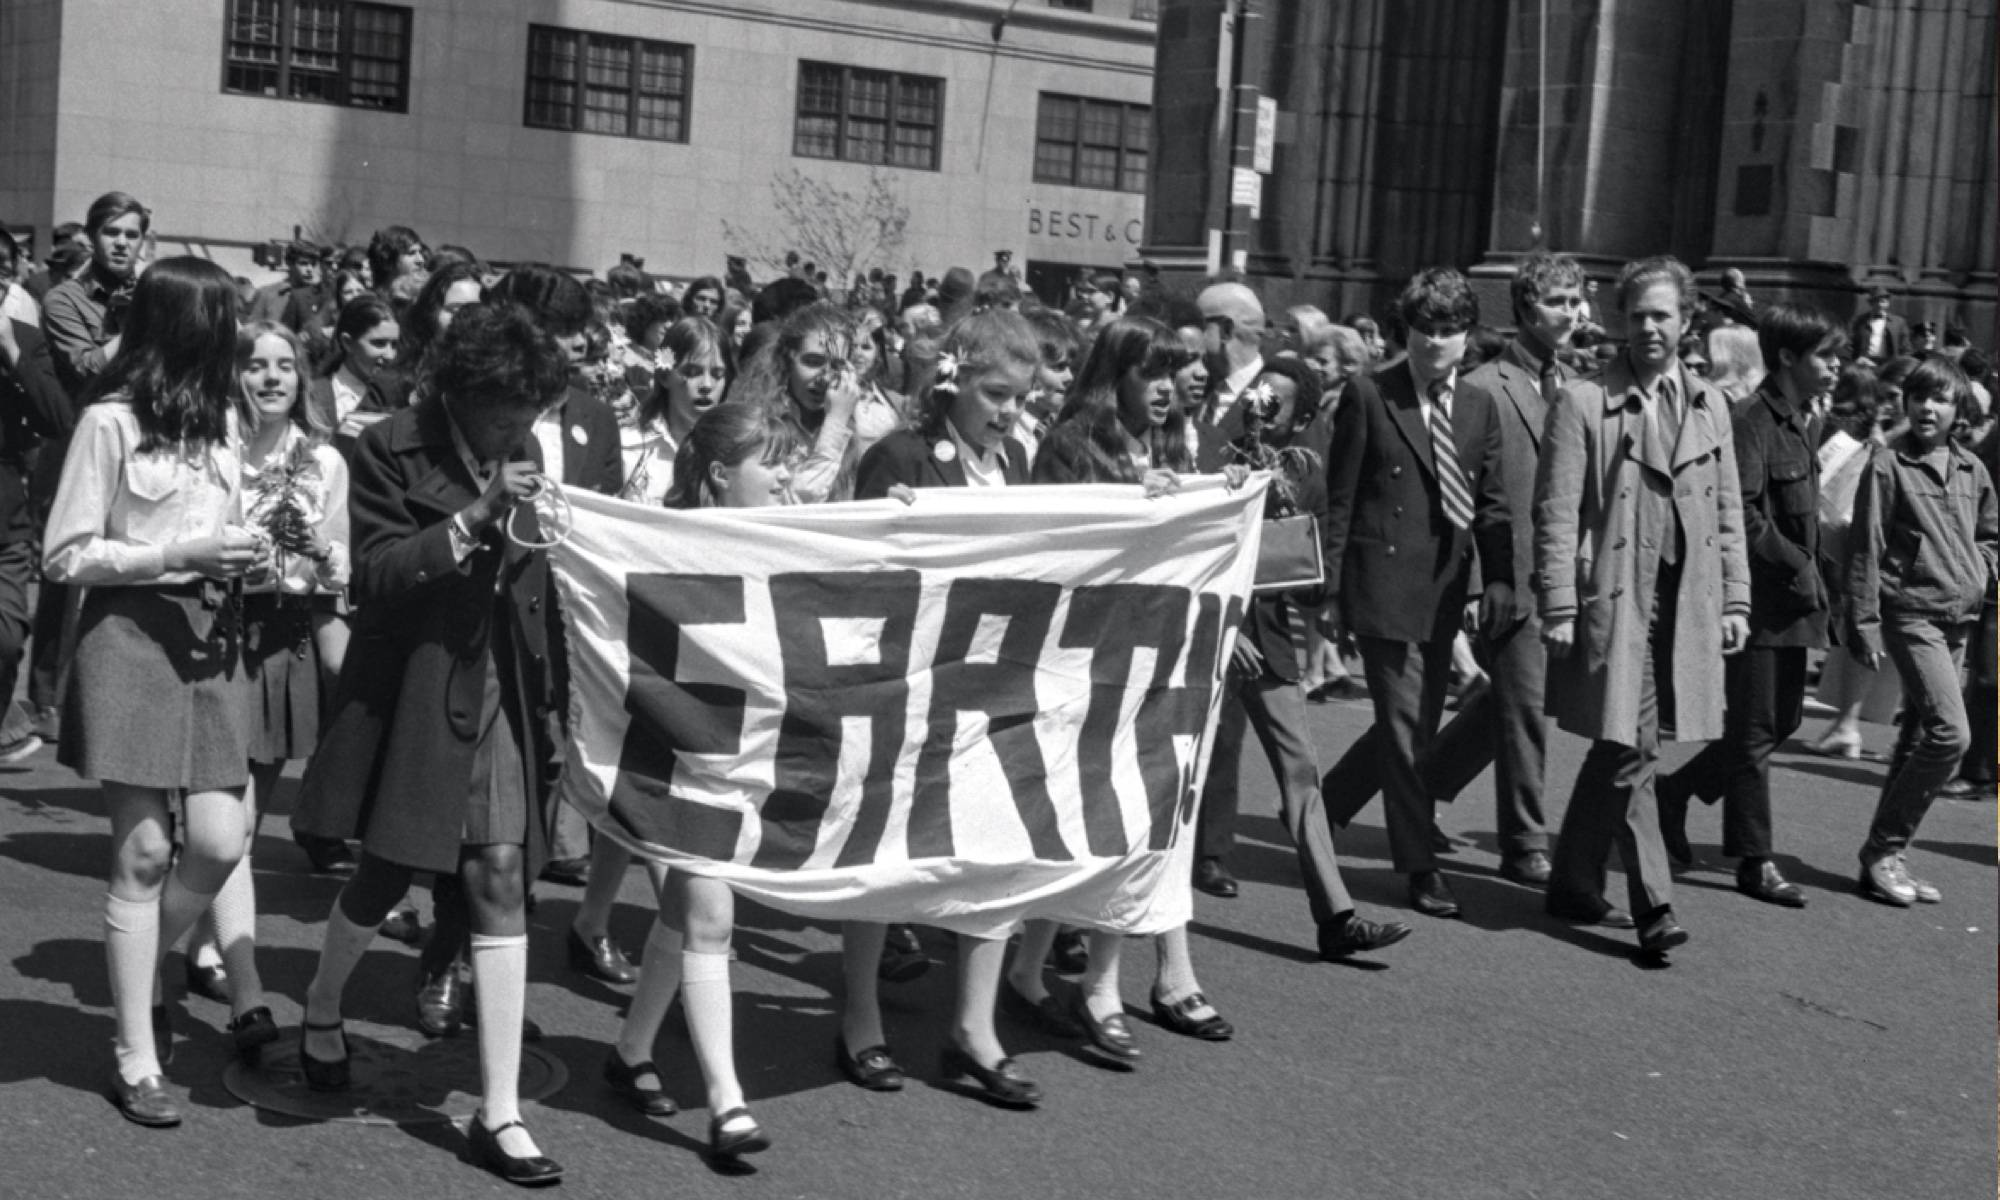 Earth day march 1970.